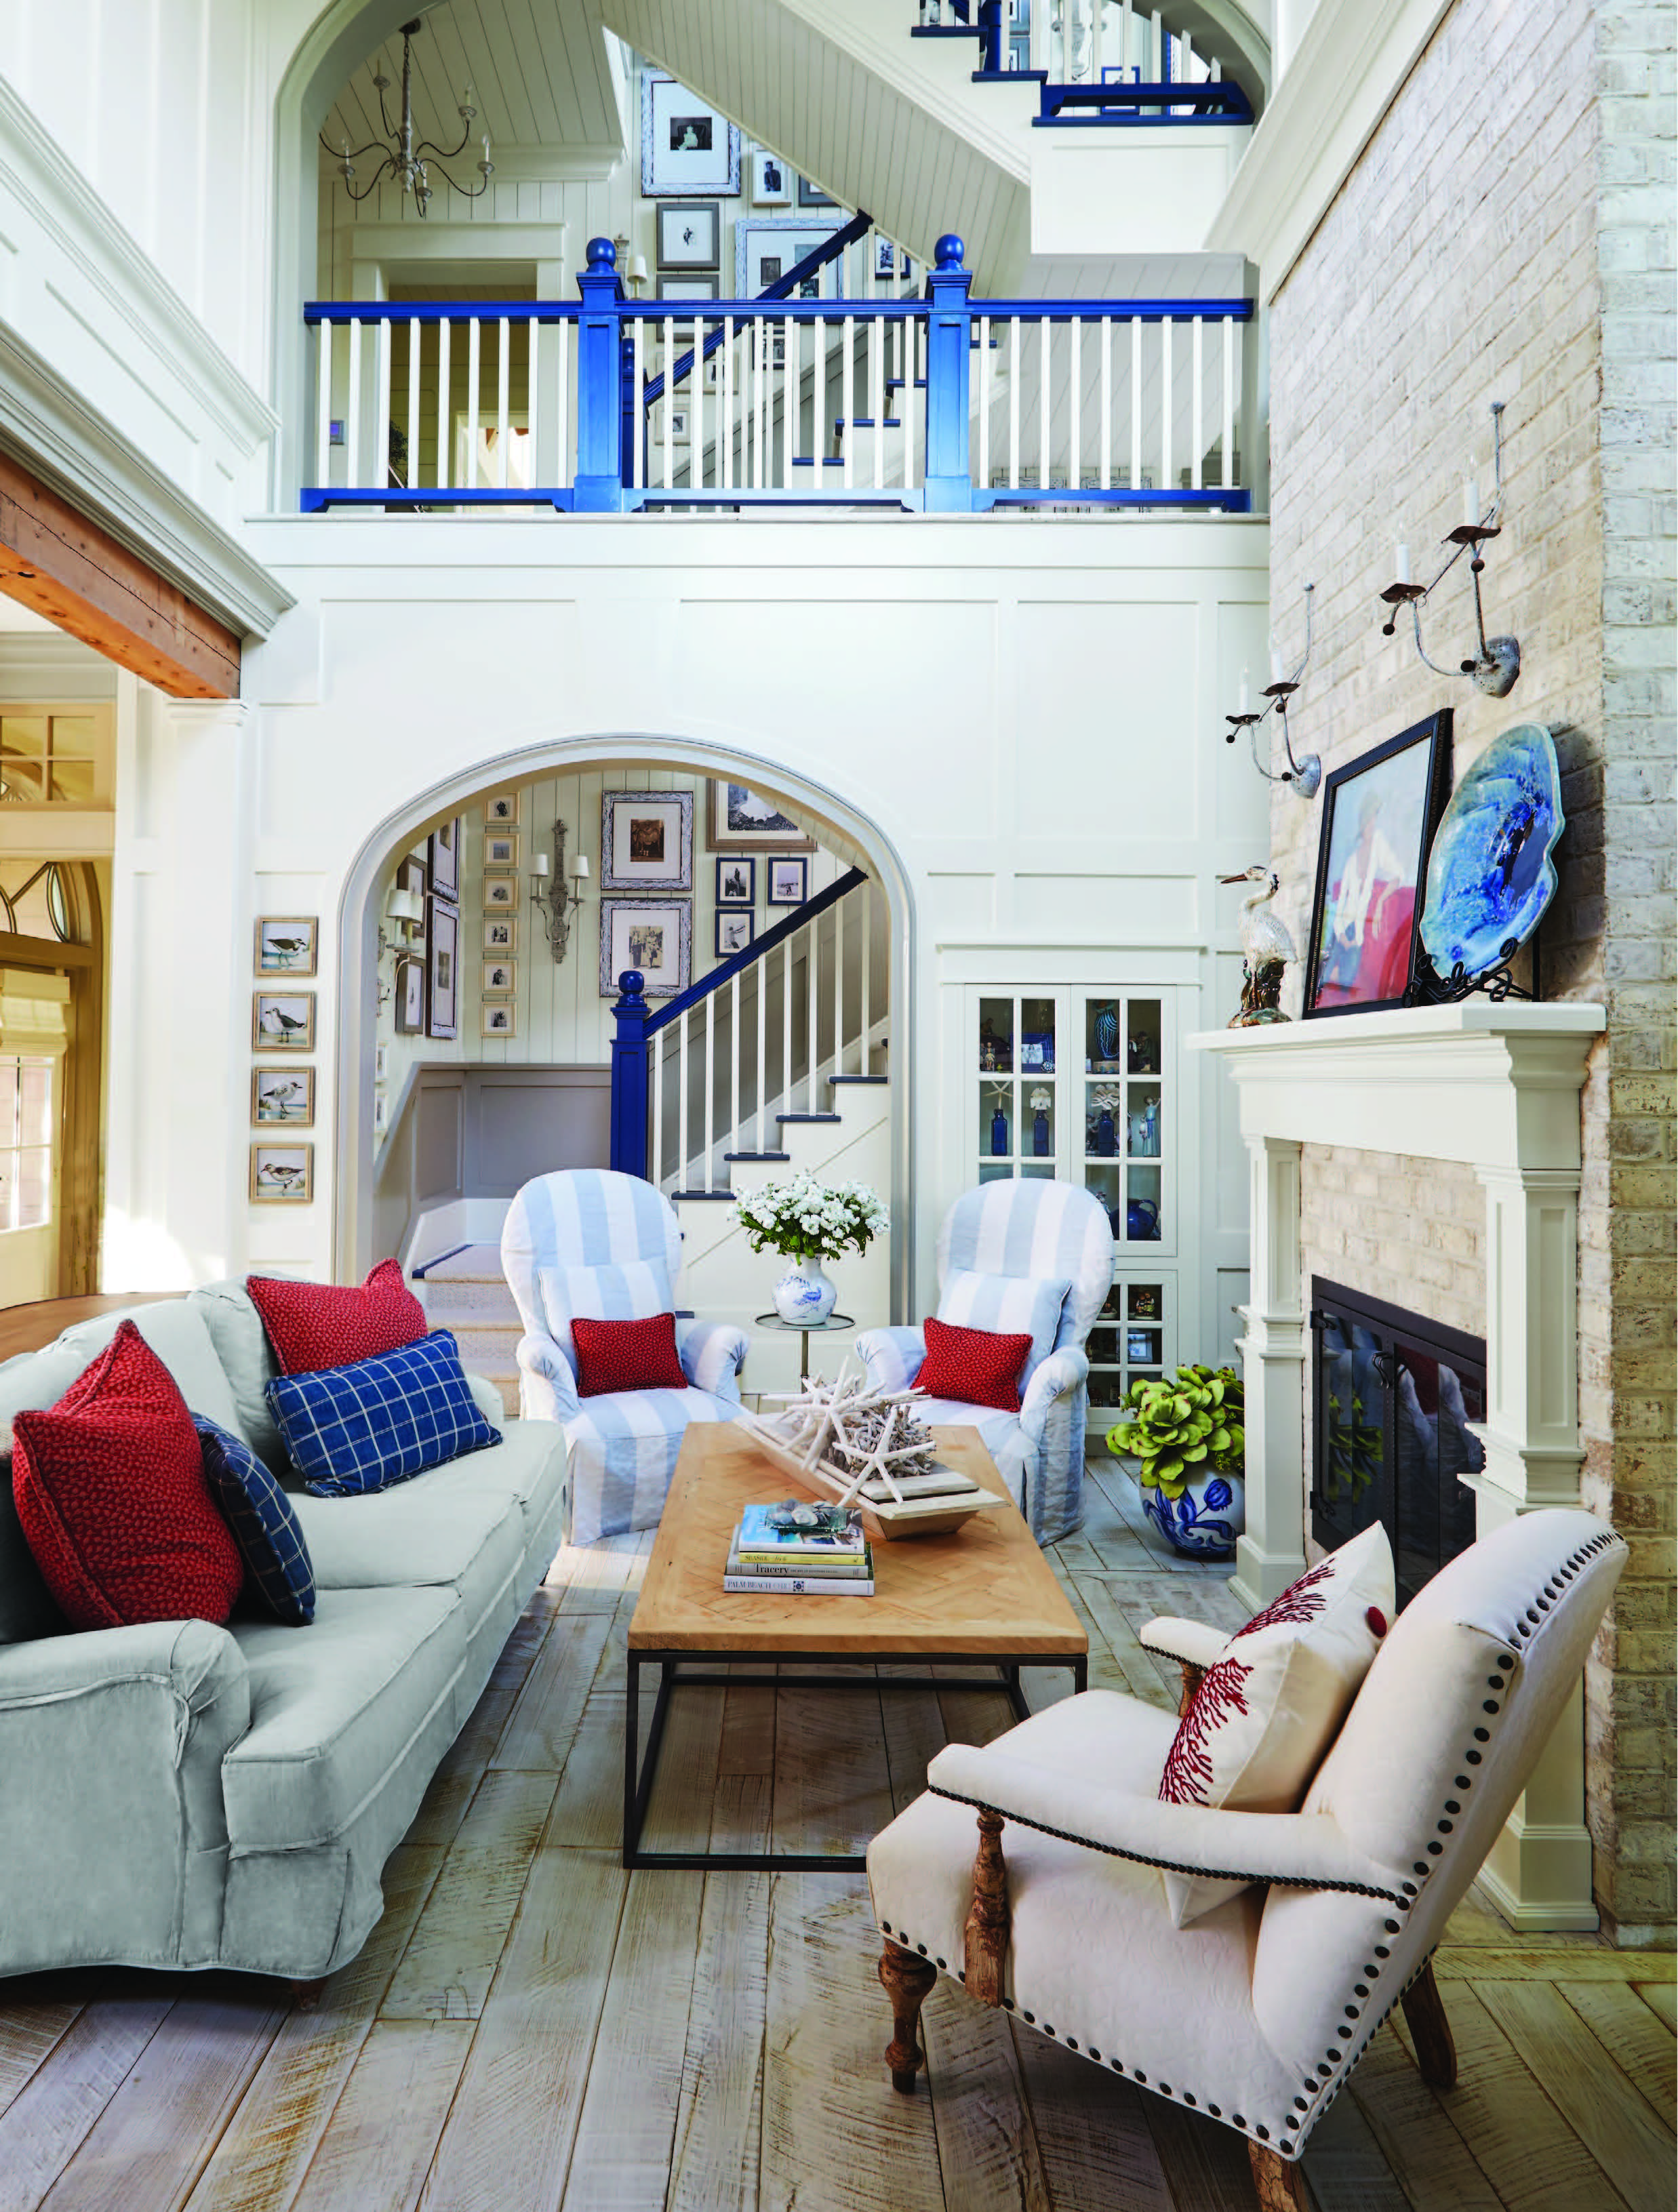 Susan painted the stairway railings and risers a bright blue to create a dramatic focal point in the living room. The exposed brick fireplace, rough-hewn beams, and whitewashed oak floors provide a texture-rich yet neutral foundation that allows colorful accents to pop.